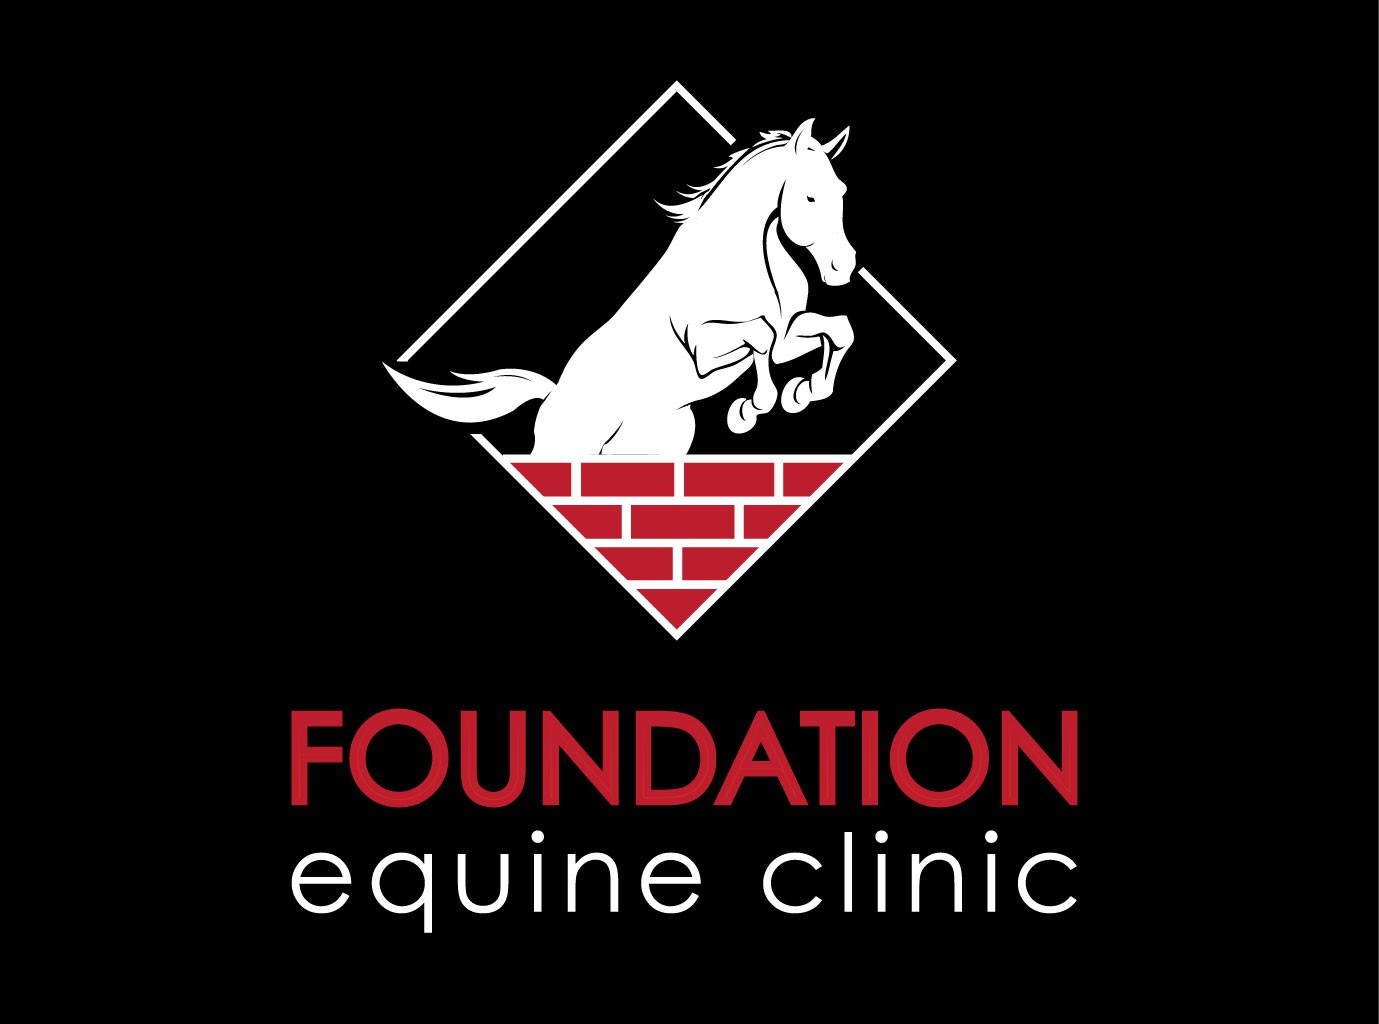 Revise this logo for a horse veterinarian!